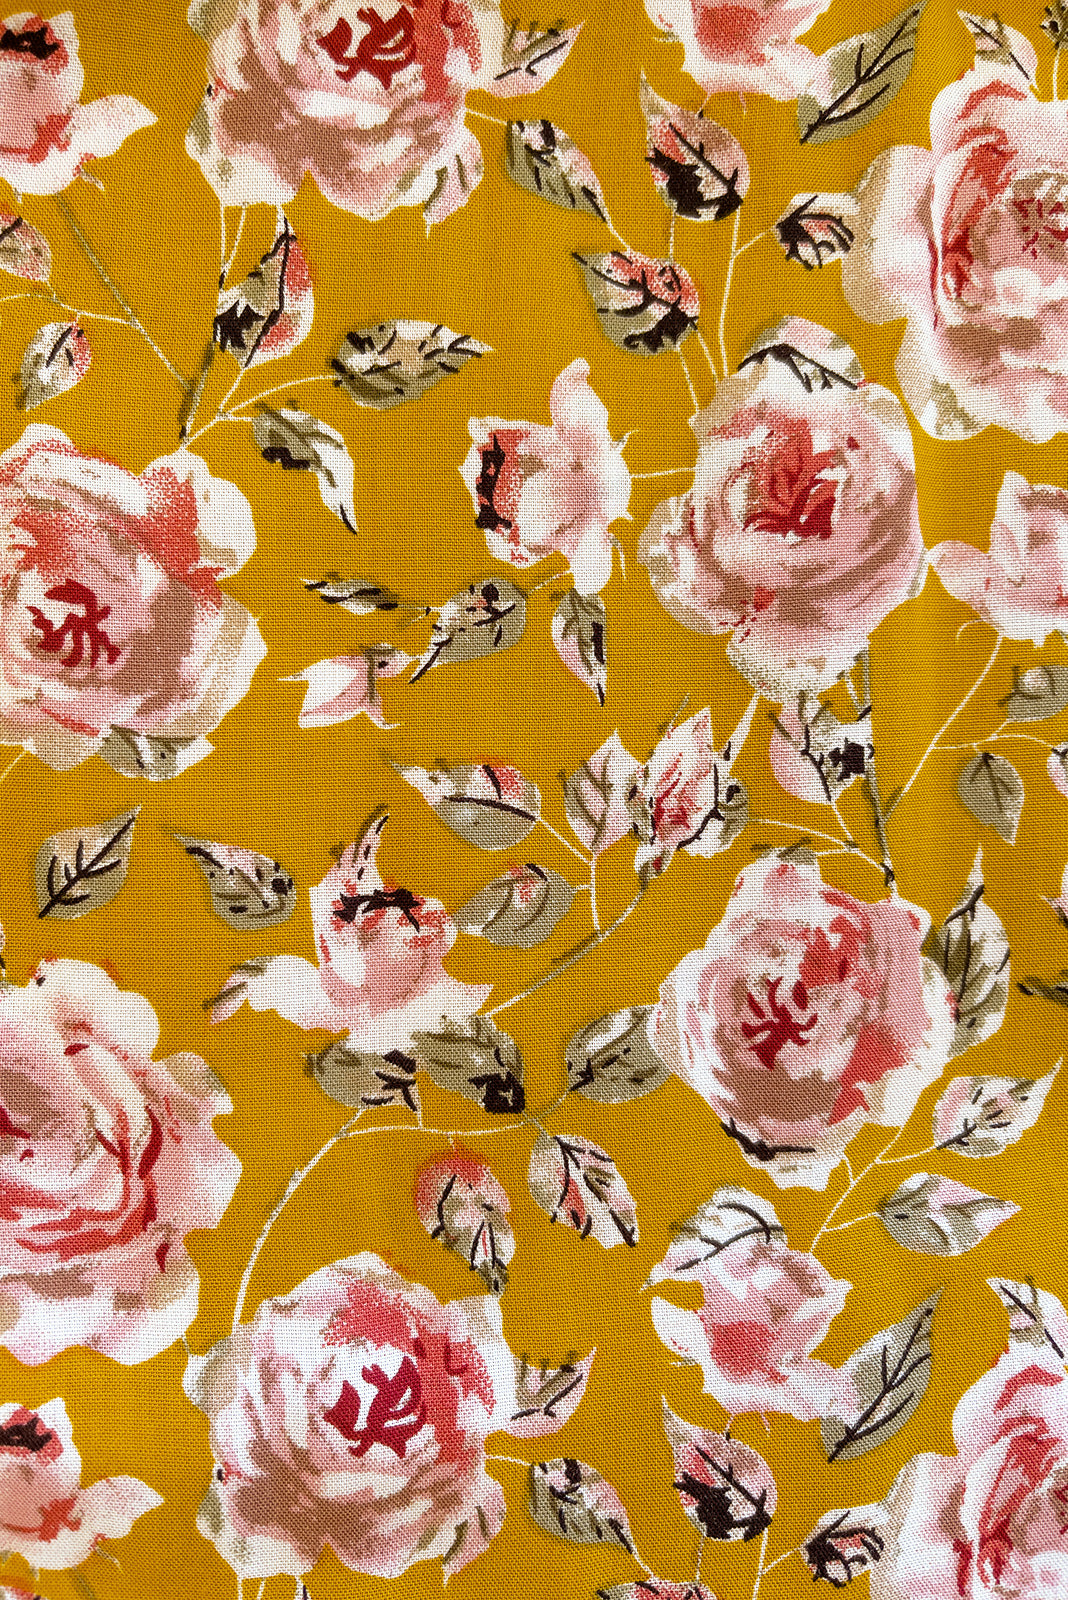 Fabric Swatch of Mariette Golden Roses Dress featuring woven 100% viscose in soft gold base with pale pink rose print print.